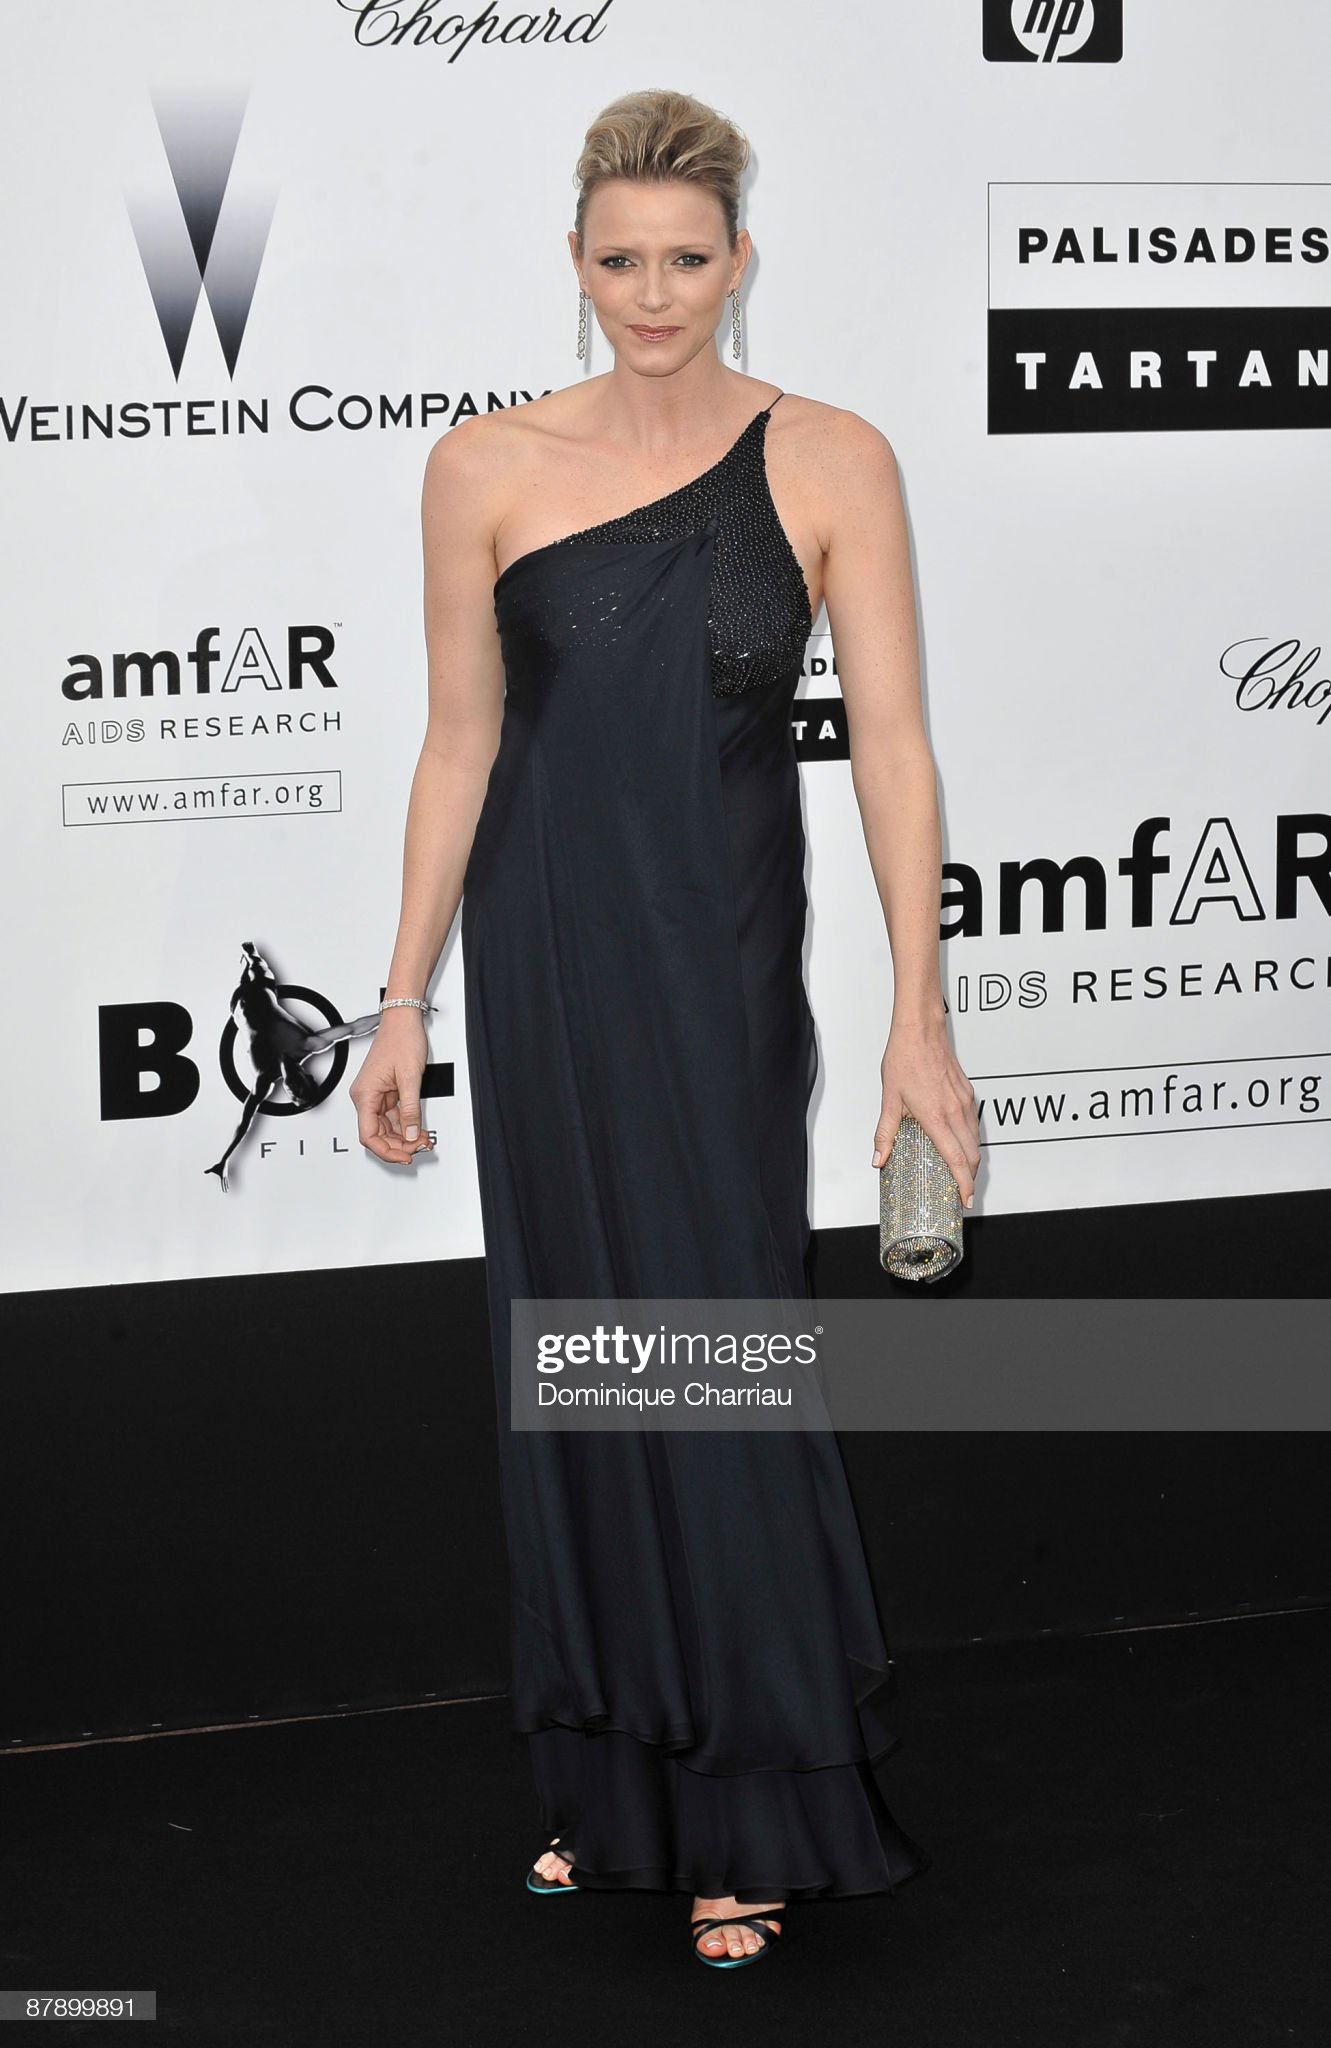 62nd Annual Cannes Film Festival - amfAR Cinema Against AIDS Arrivals : News Photo